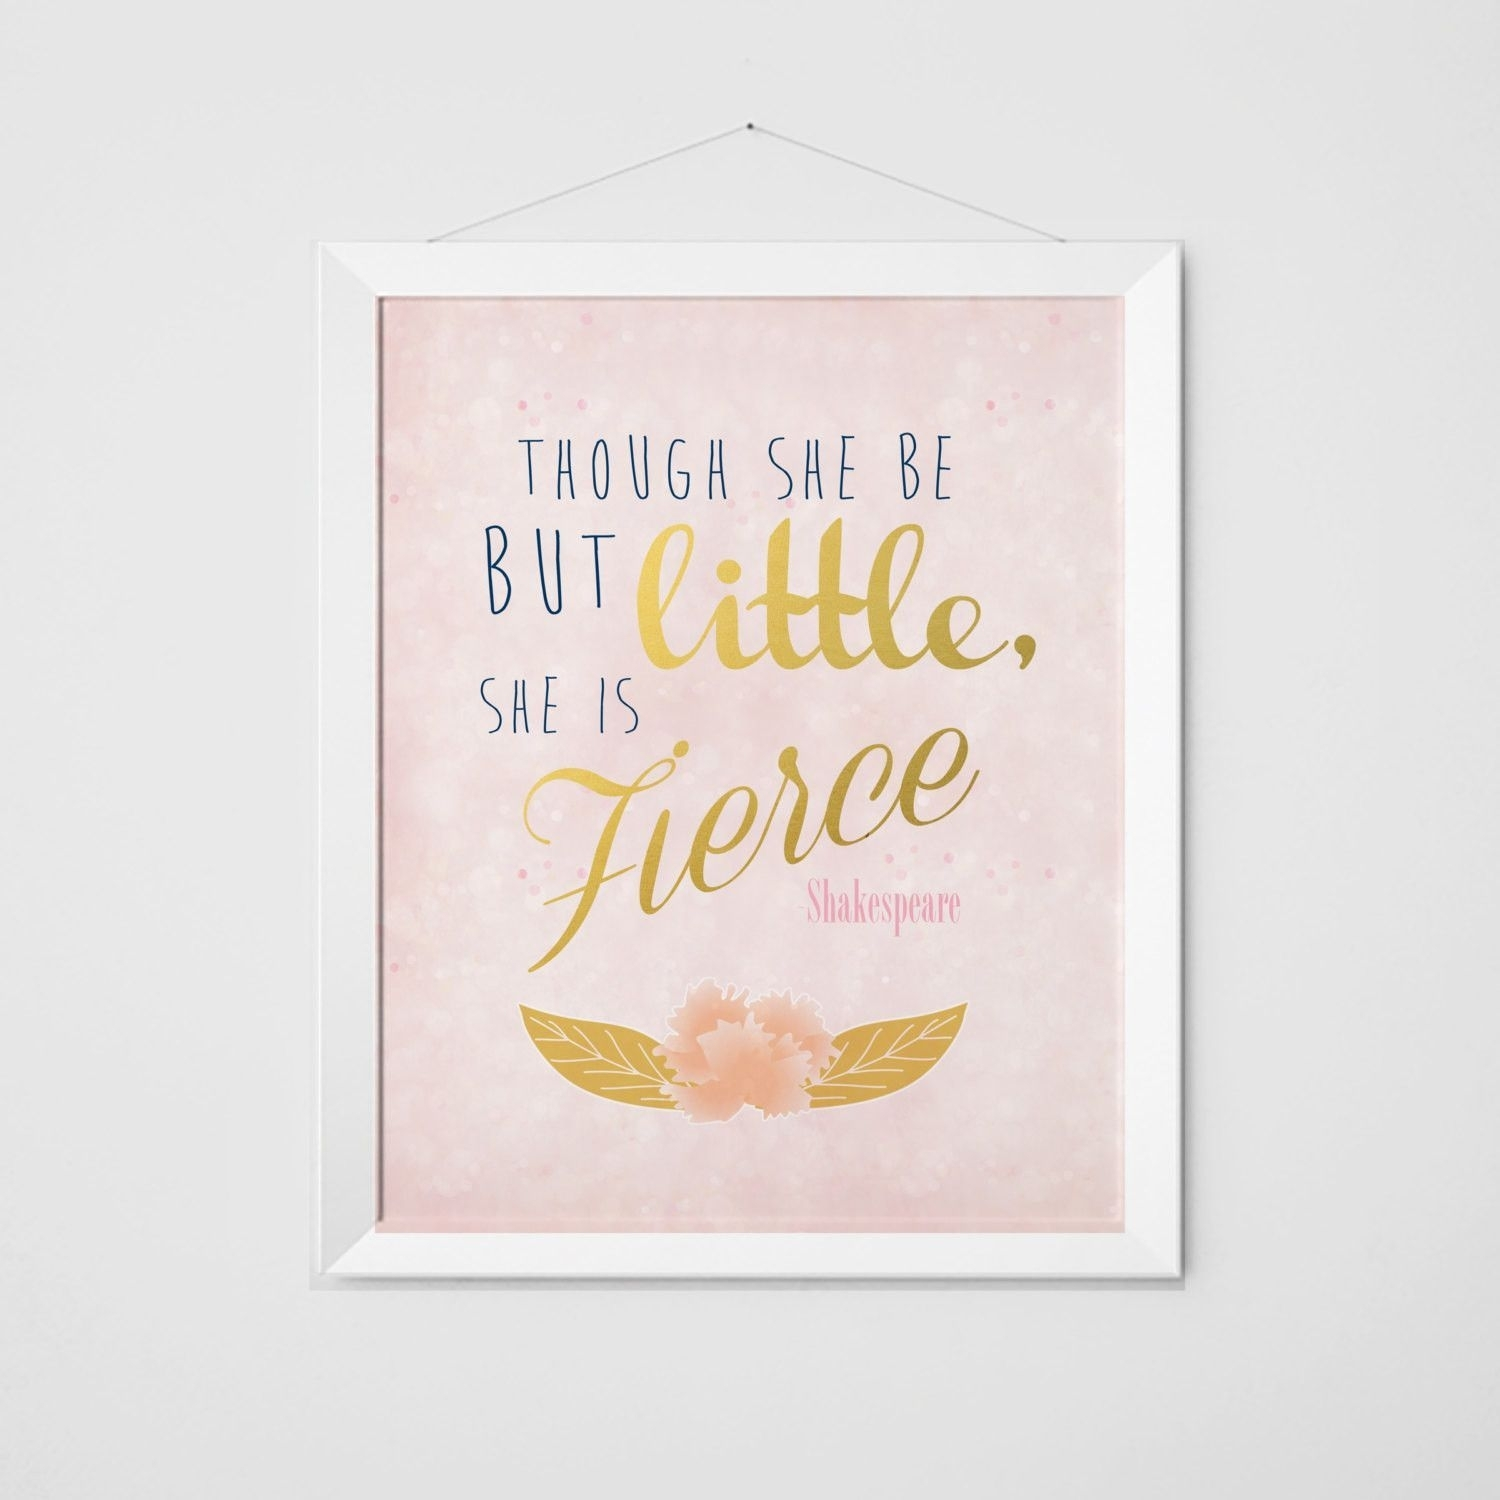 Though She Is But Little, She Is Fierce Print – Pink Sparkle Pertaining To Though She Be But Little She Is Fierce Wall Art (View 5 of 20)